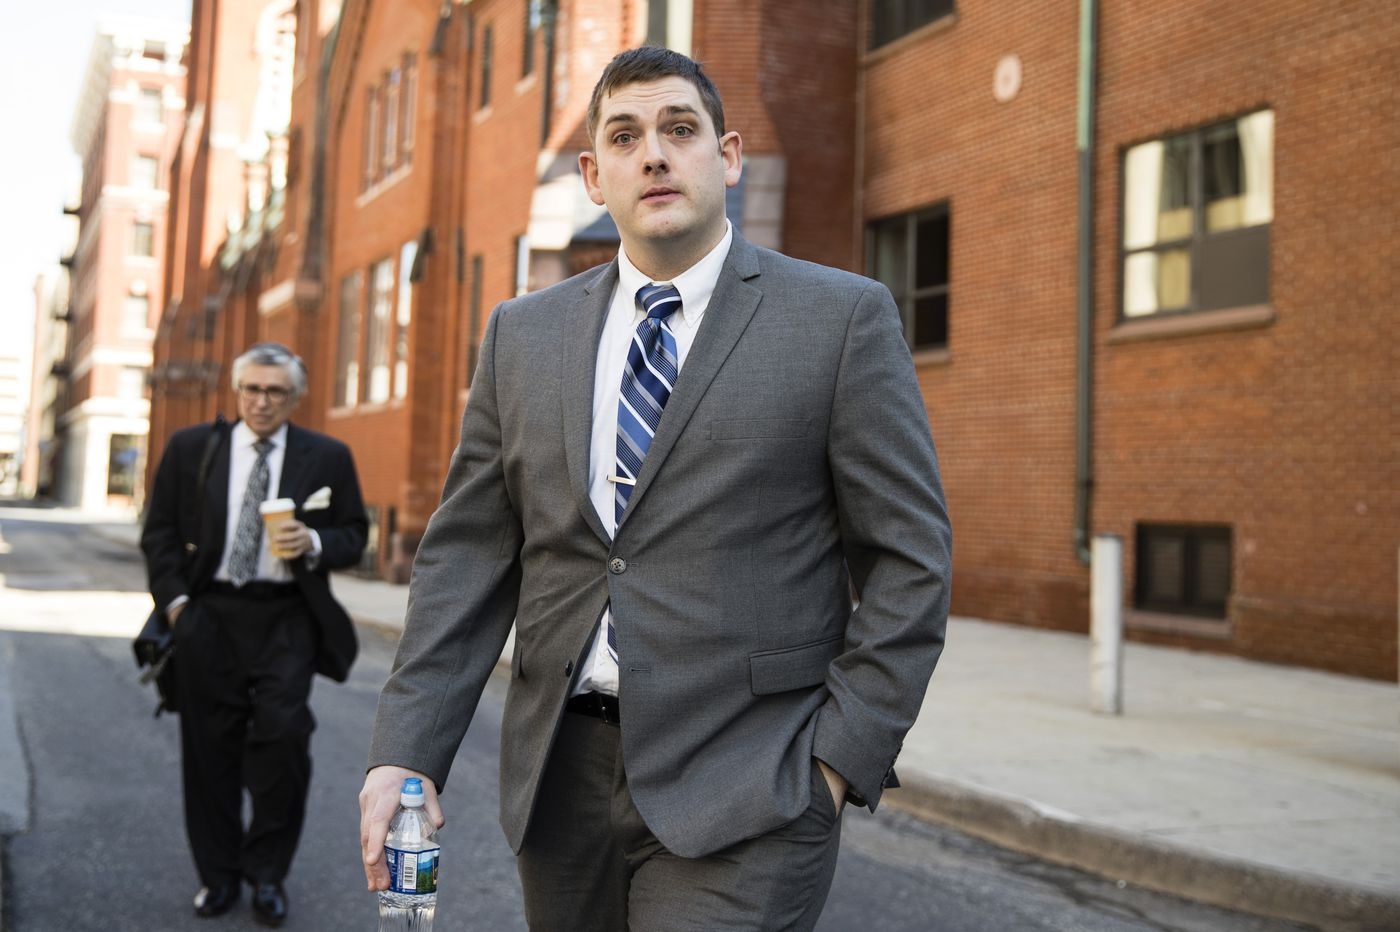 White officer on trial in fatal shooting of Antwon Rose, 17